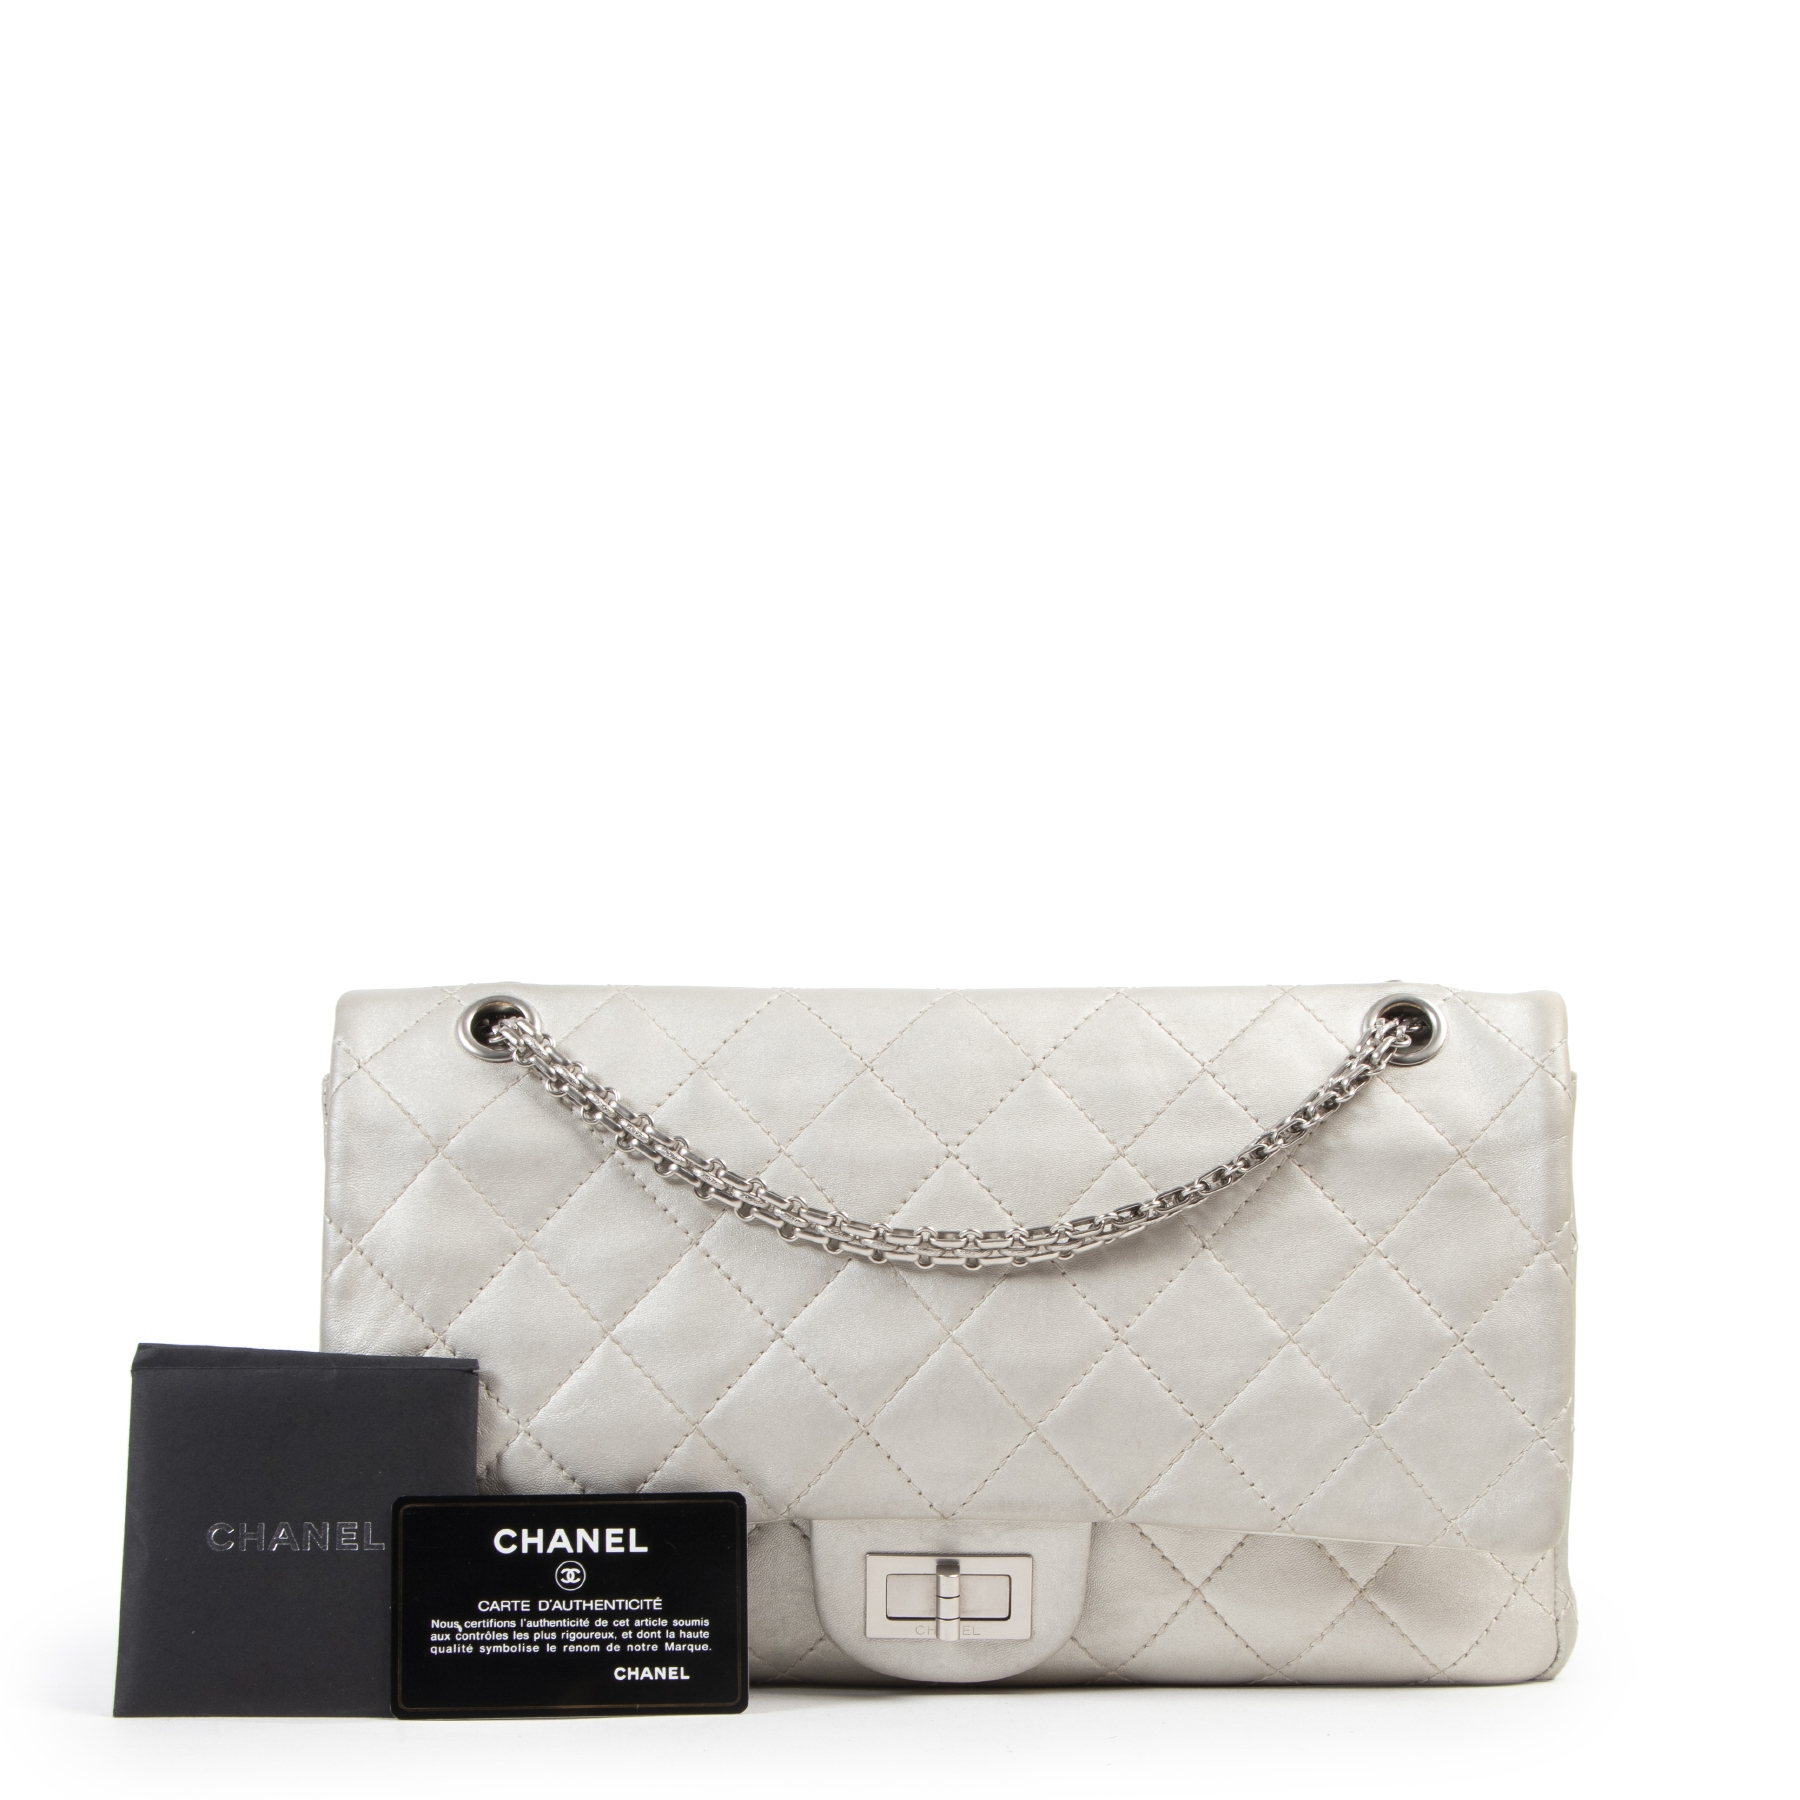 Chanel Grey Metallic Reissue 2.55 227 Bag